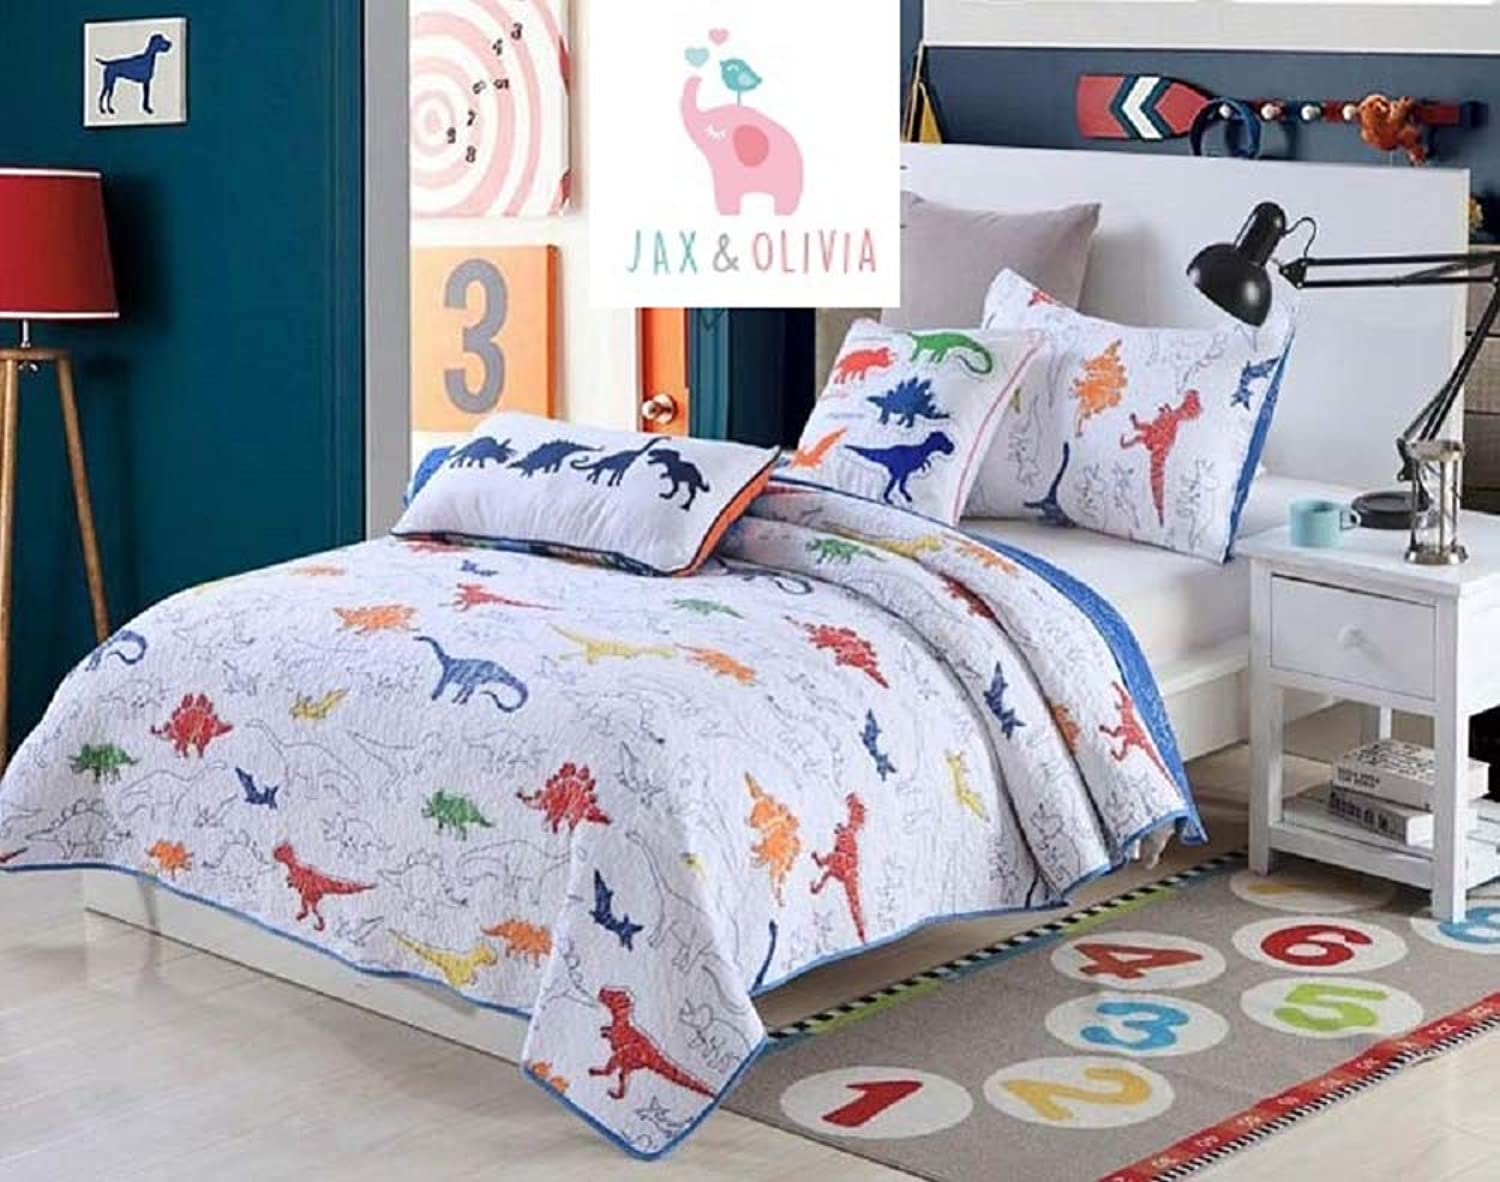 Jax & Olivia Cozy Reversible Dinosaur Quilt Set - White Quilt and colorful Dinosaurs Navy bluee, Red, Green - Full Size Bedding Quilt Set - Reversible bluee and White Dinosaur Design Bedspread & 2 Pillo